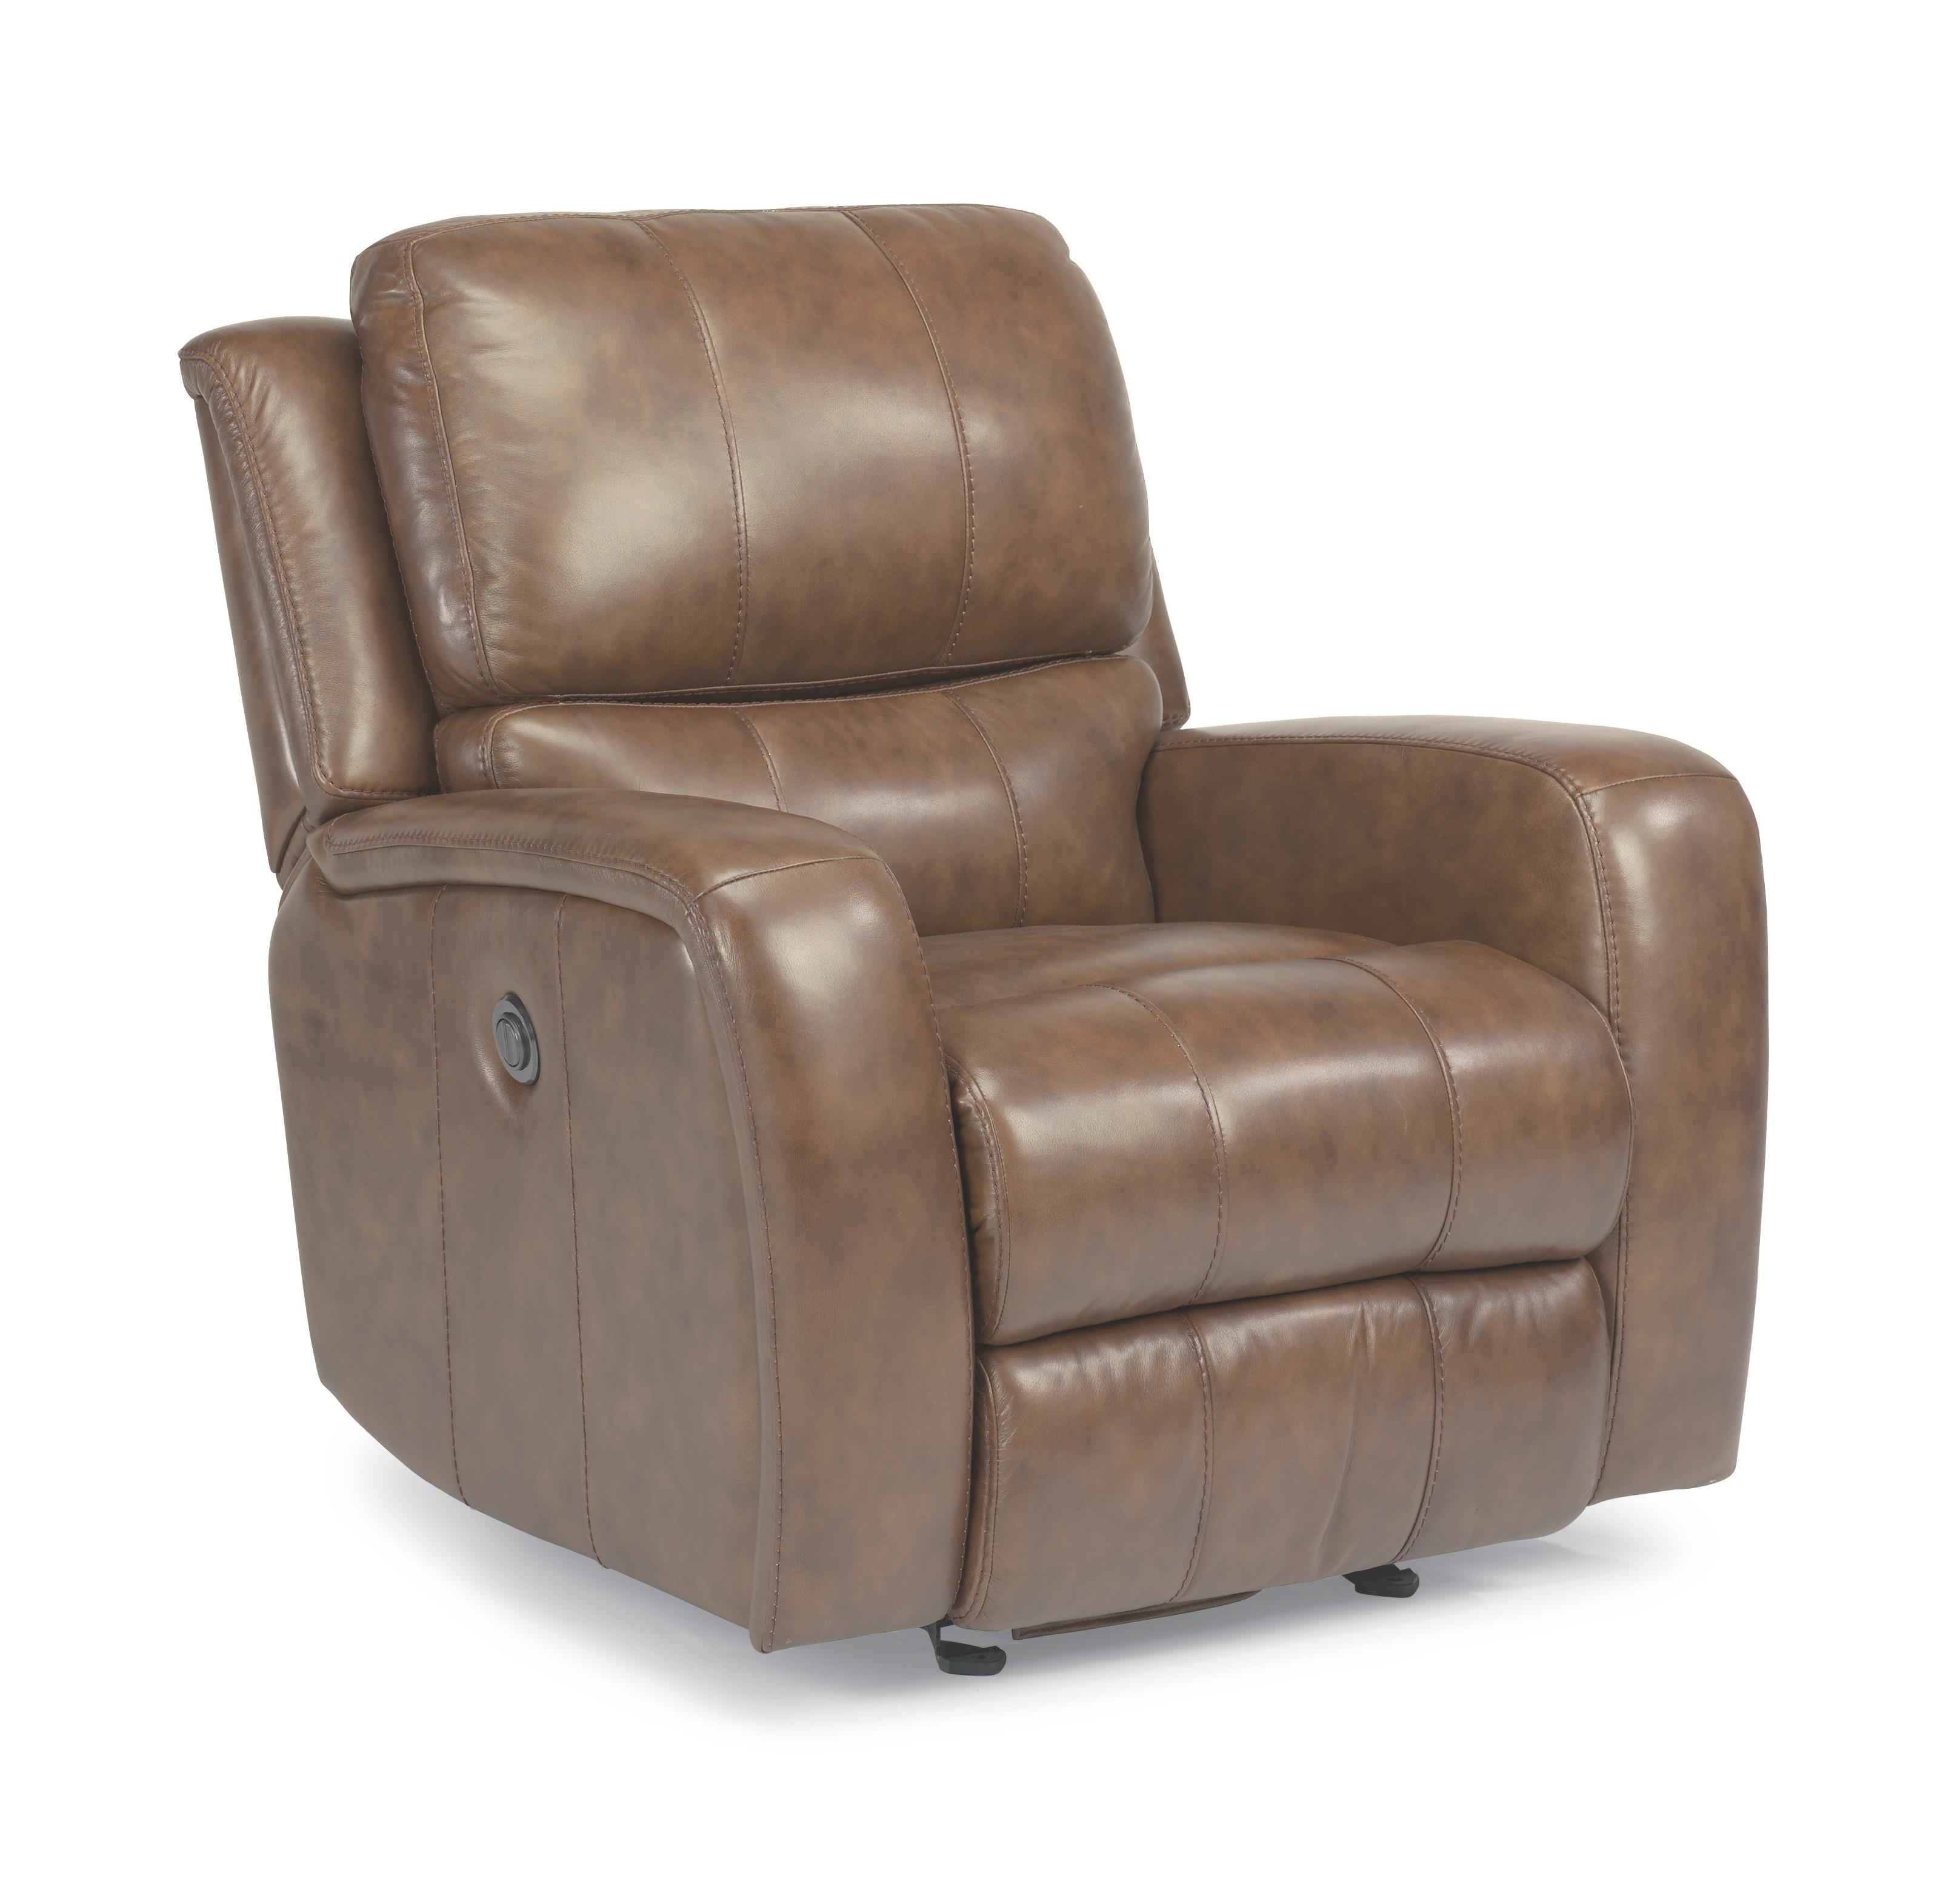 Flexsteel Latitudes-Hammond Glider Recliner with power - Item Number: 1157-54P-555-74